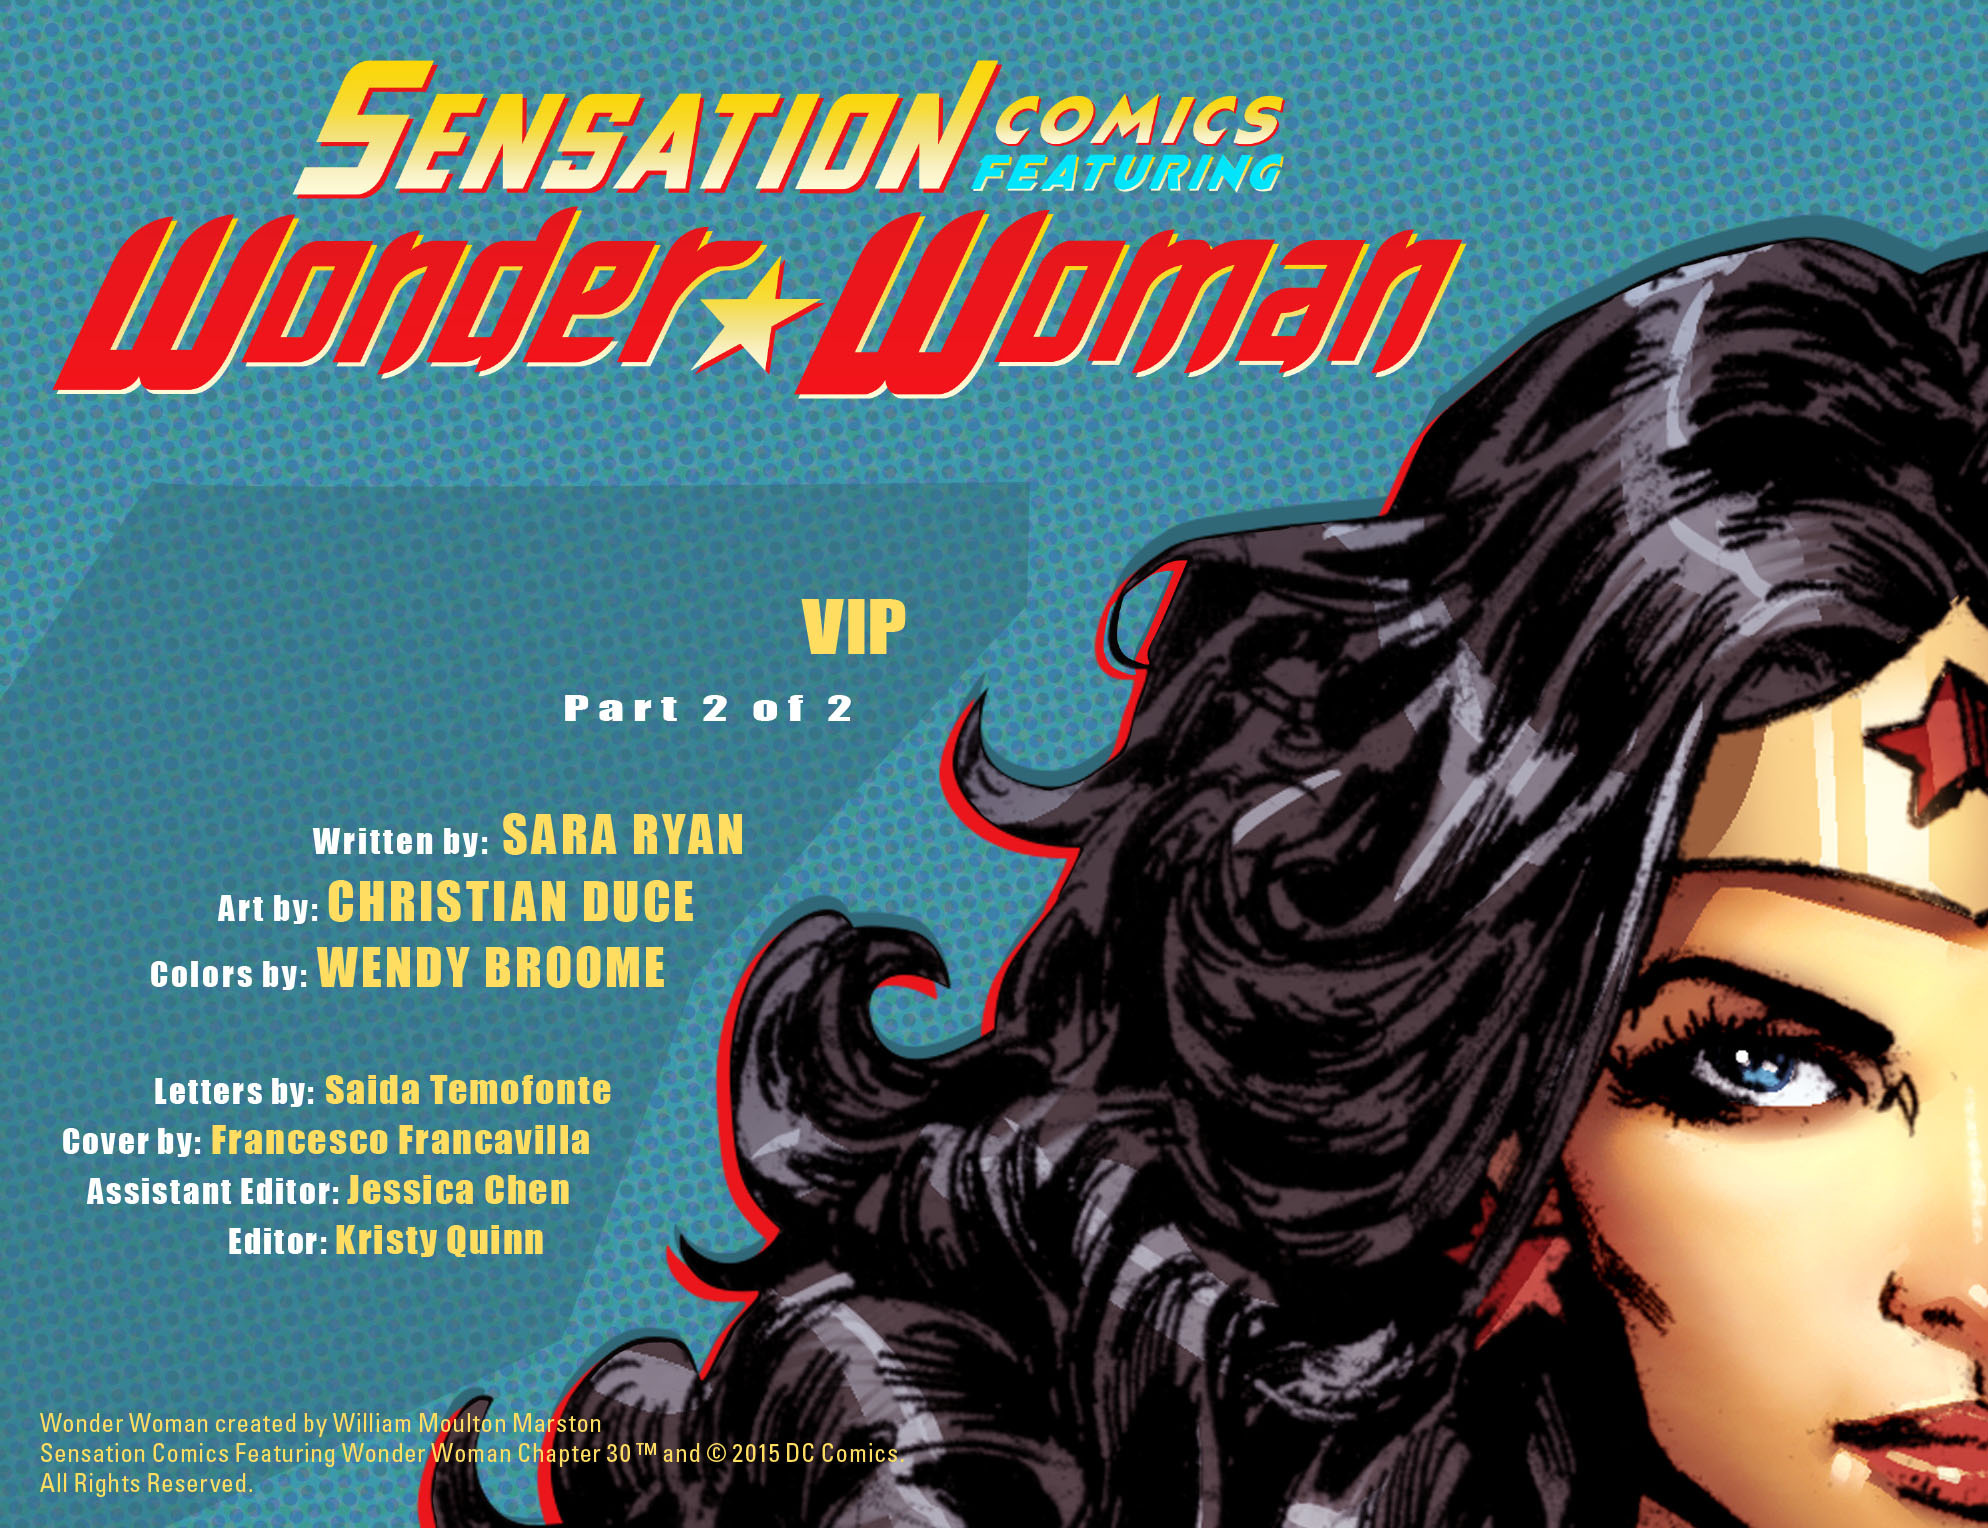 Read online Sensation Comics Featuring Wonder Woman comic -  Issue #30 - 2